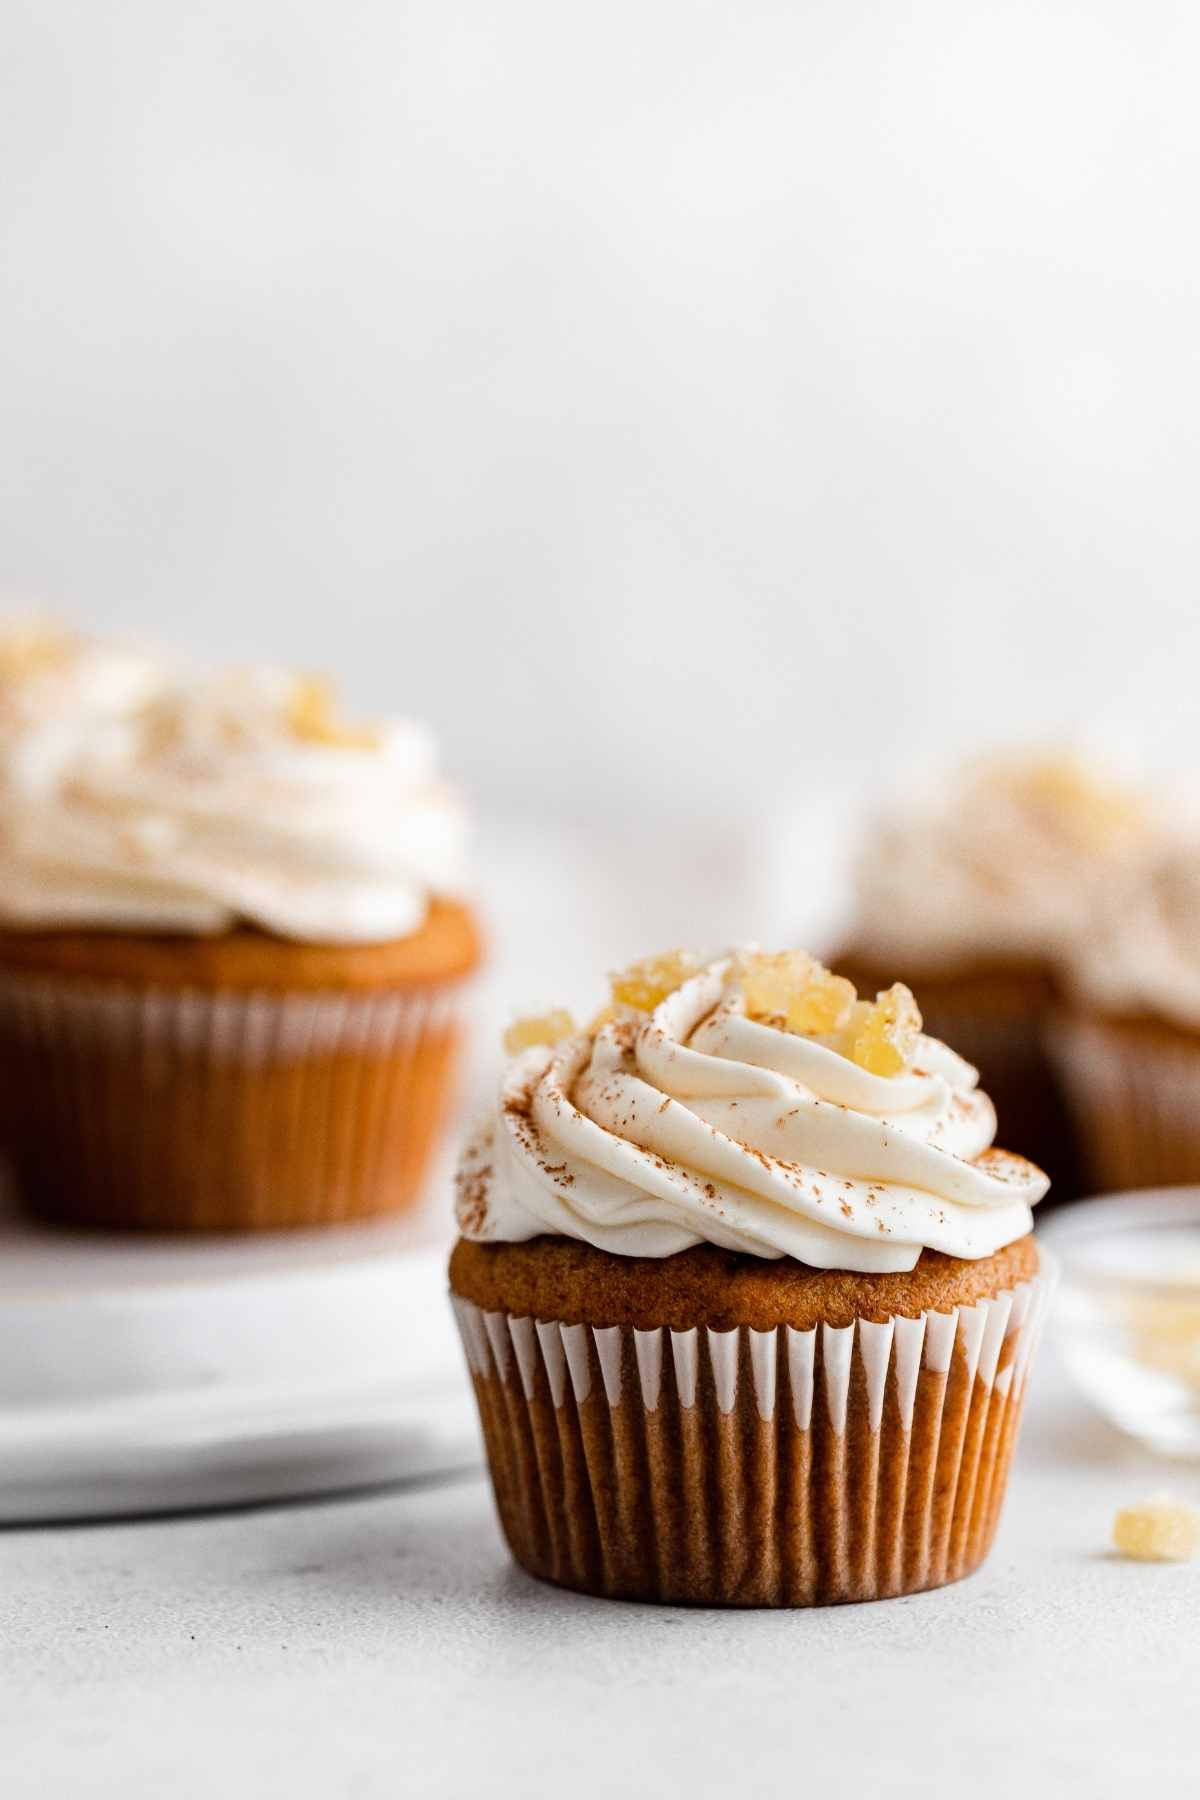 Pumpkin Ginger Cupcakes with cream cheese frosting swirl and candied ginger garnish